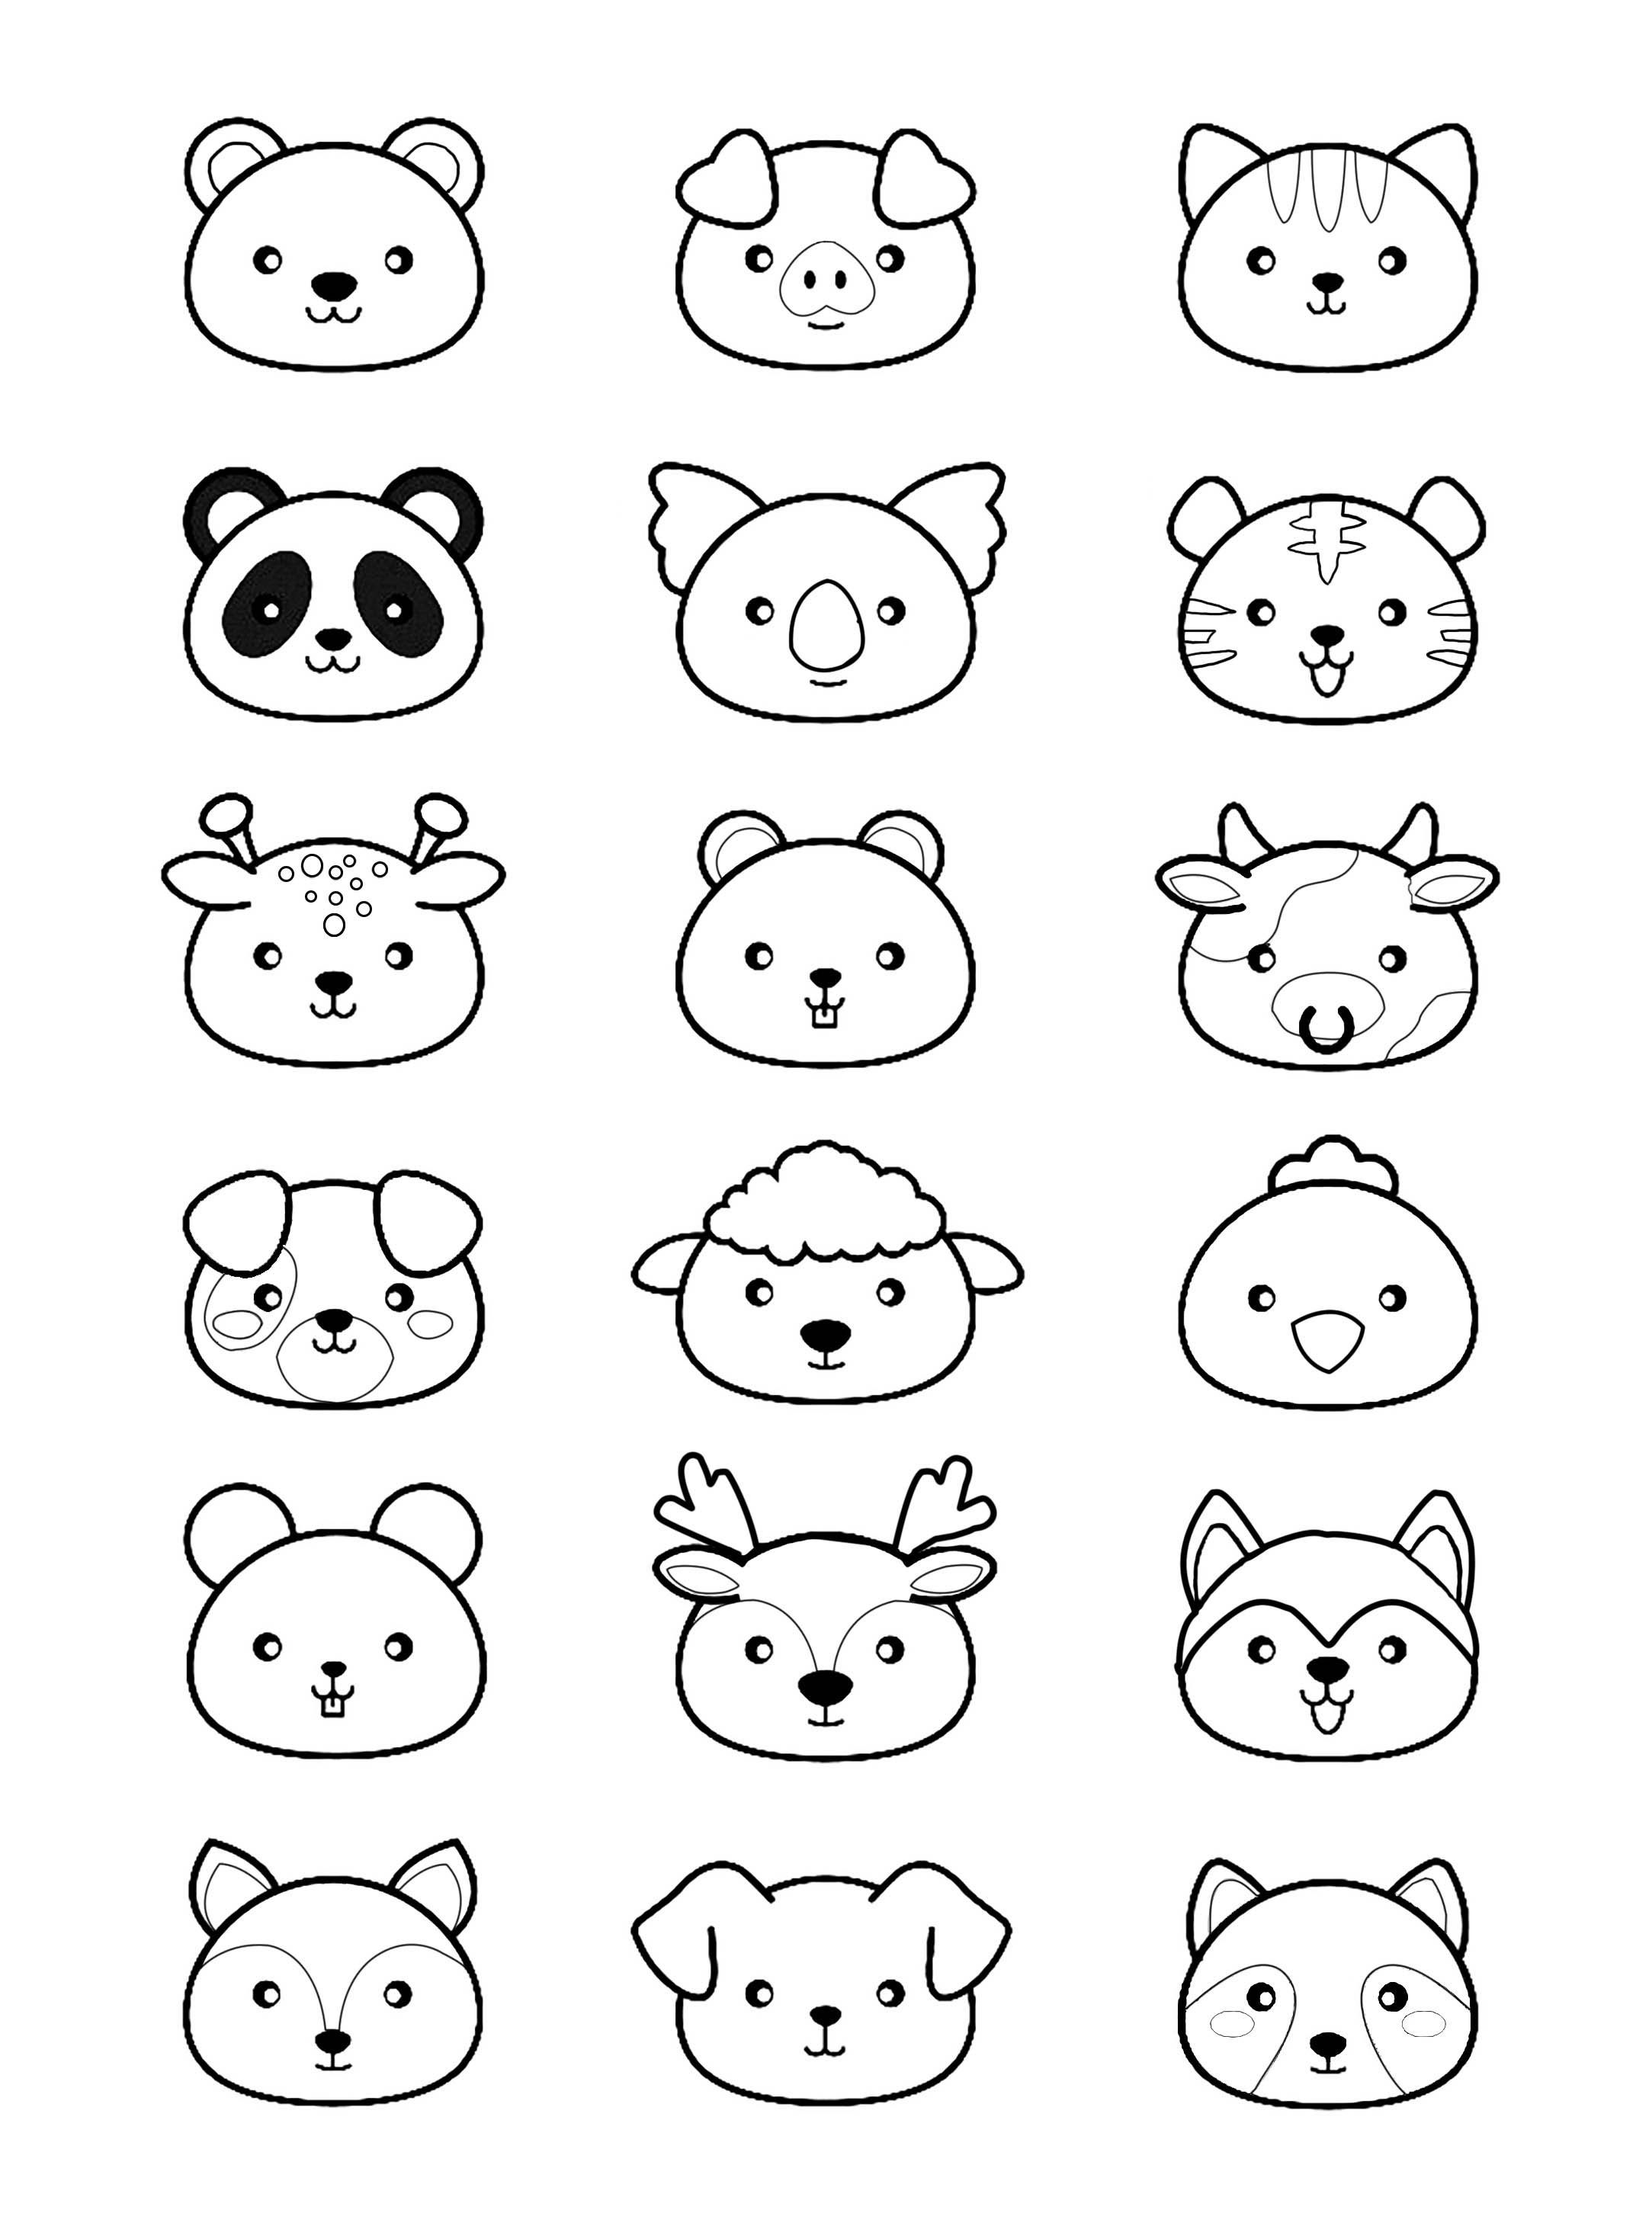 Kawaii Animals Panda Coloring Pages For Adults Just Color